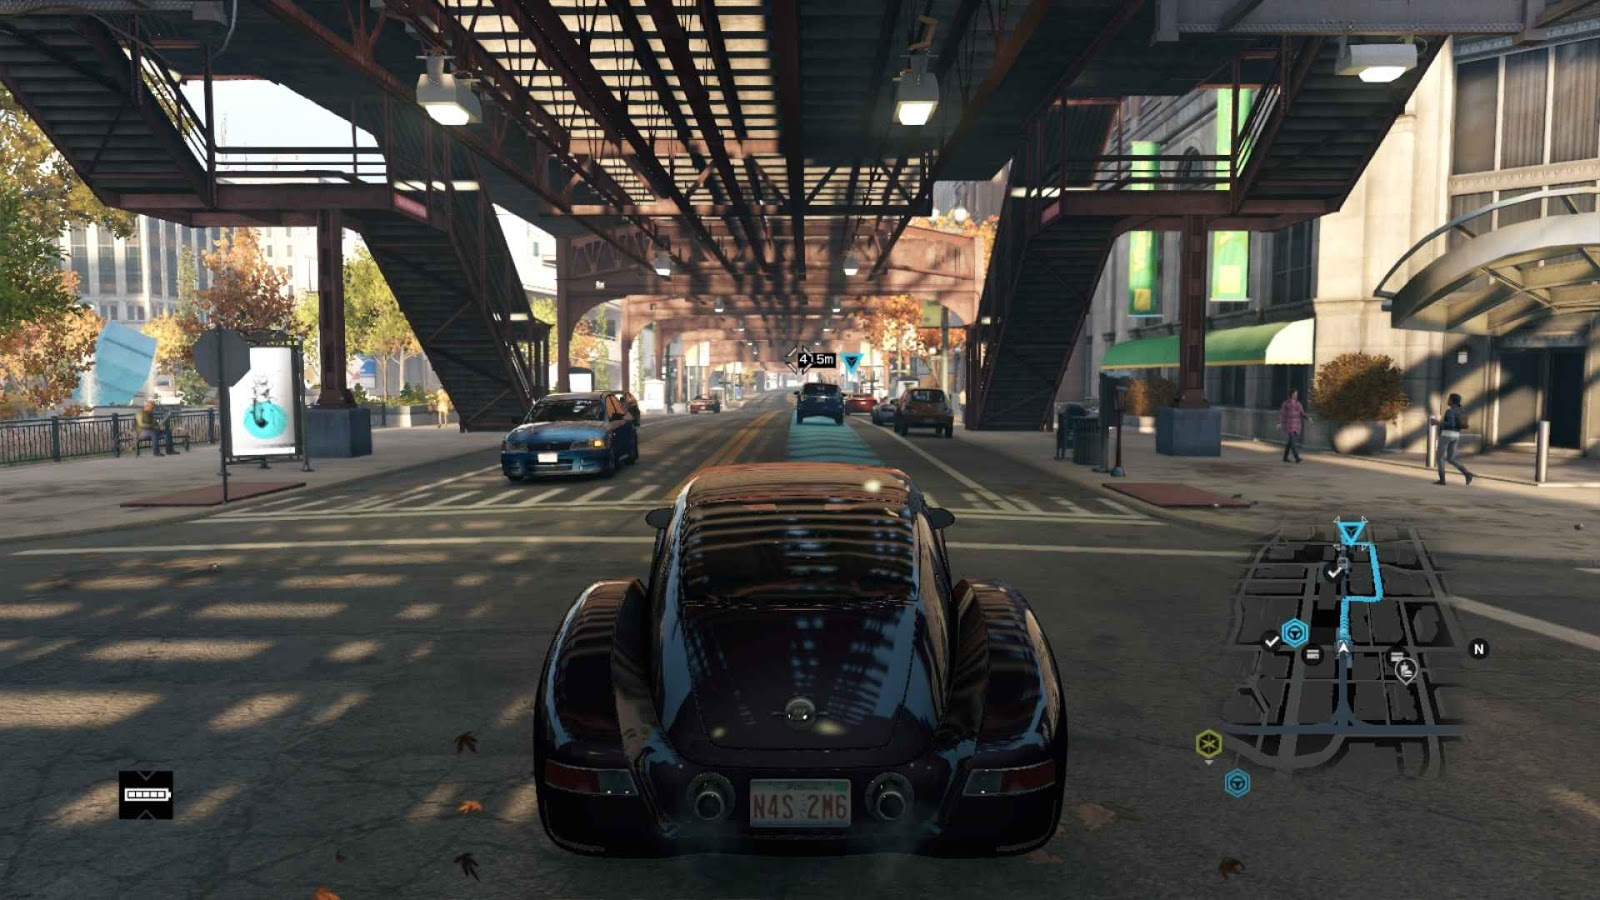 Watch dogs pc requirements - photo#47